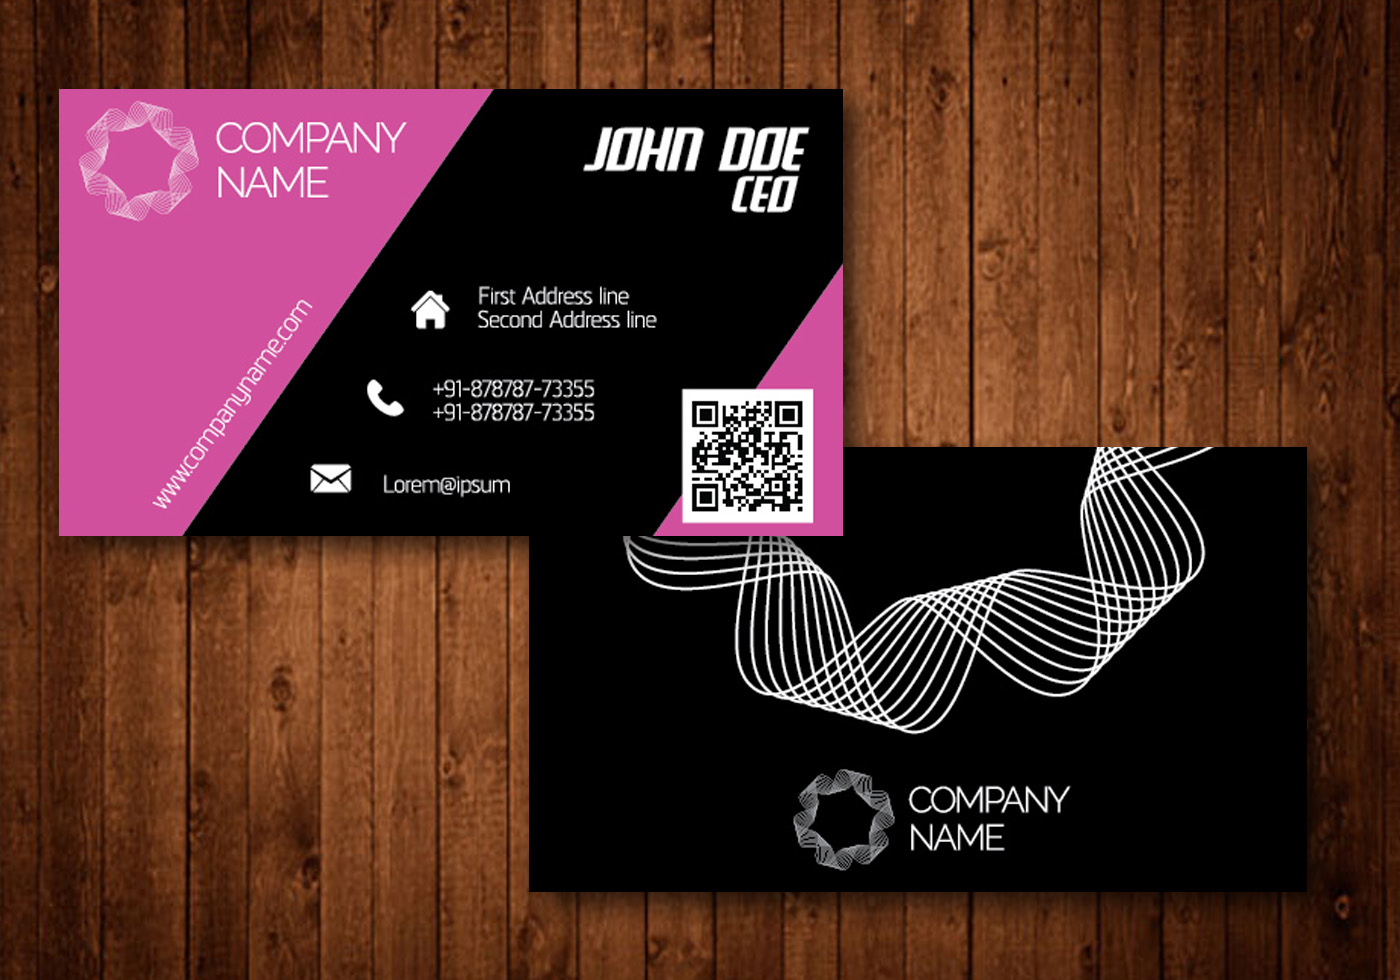 Design your Professional business card within 24 Hours